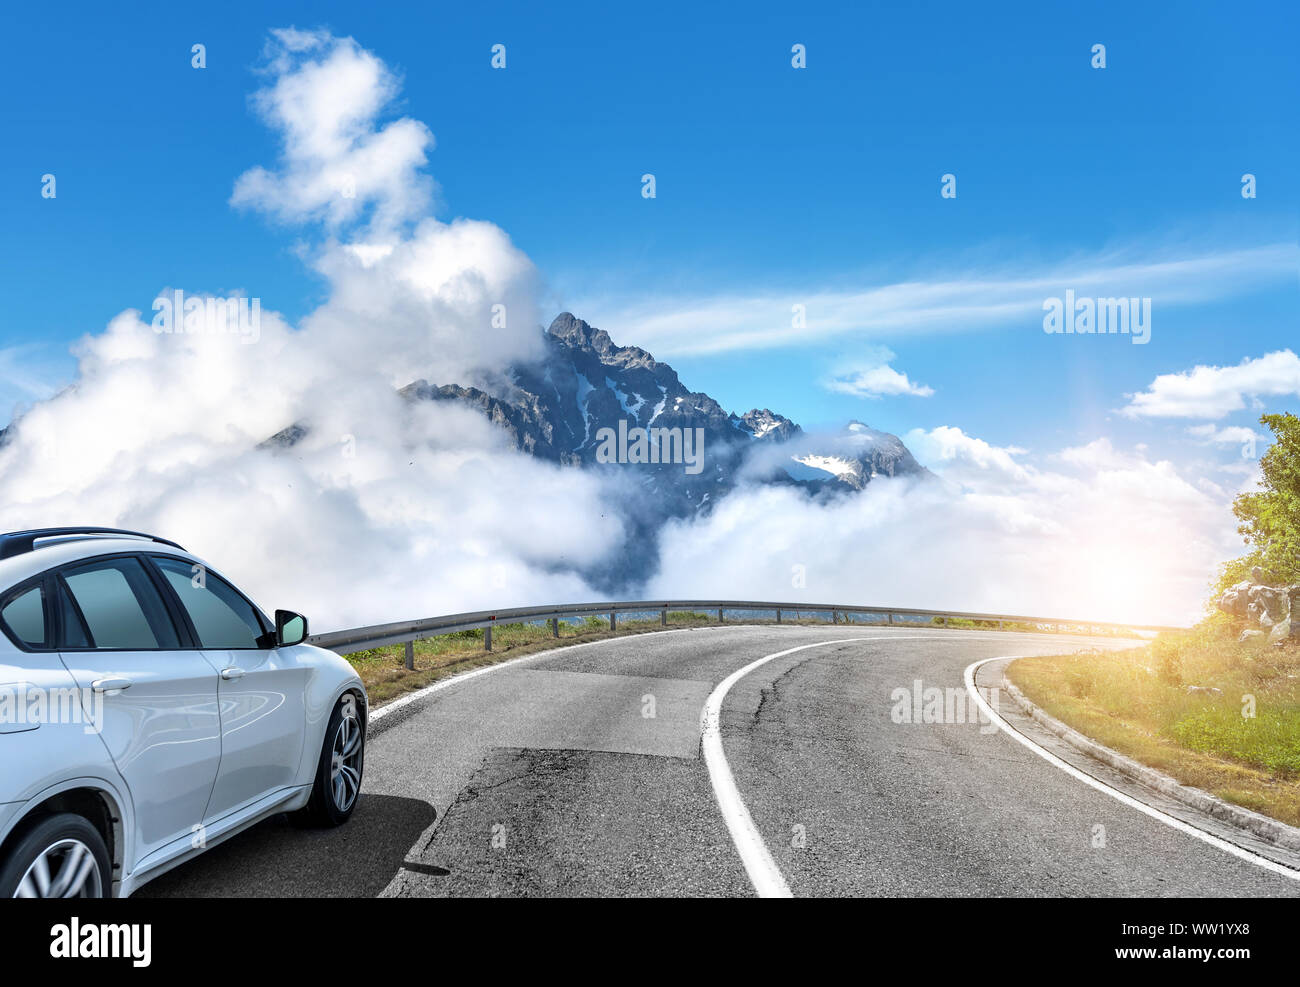 Car moves on the road among the mountains and forests. Stock Photo